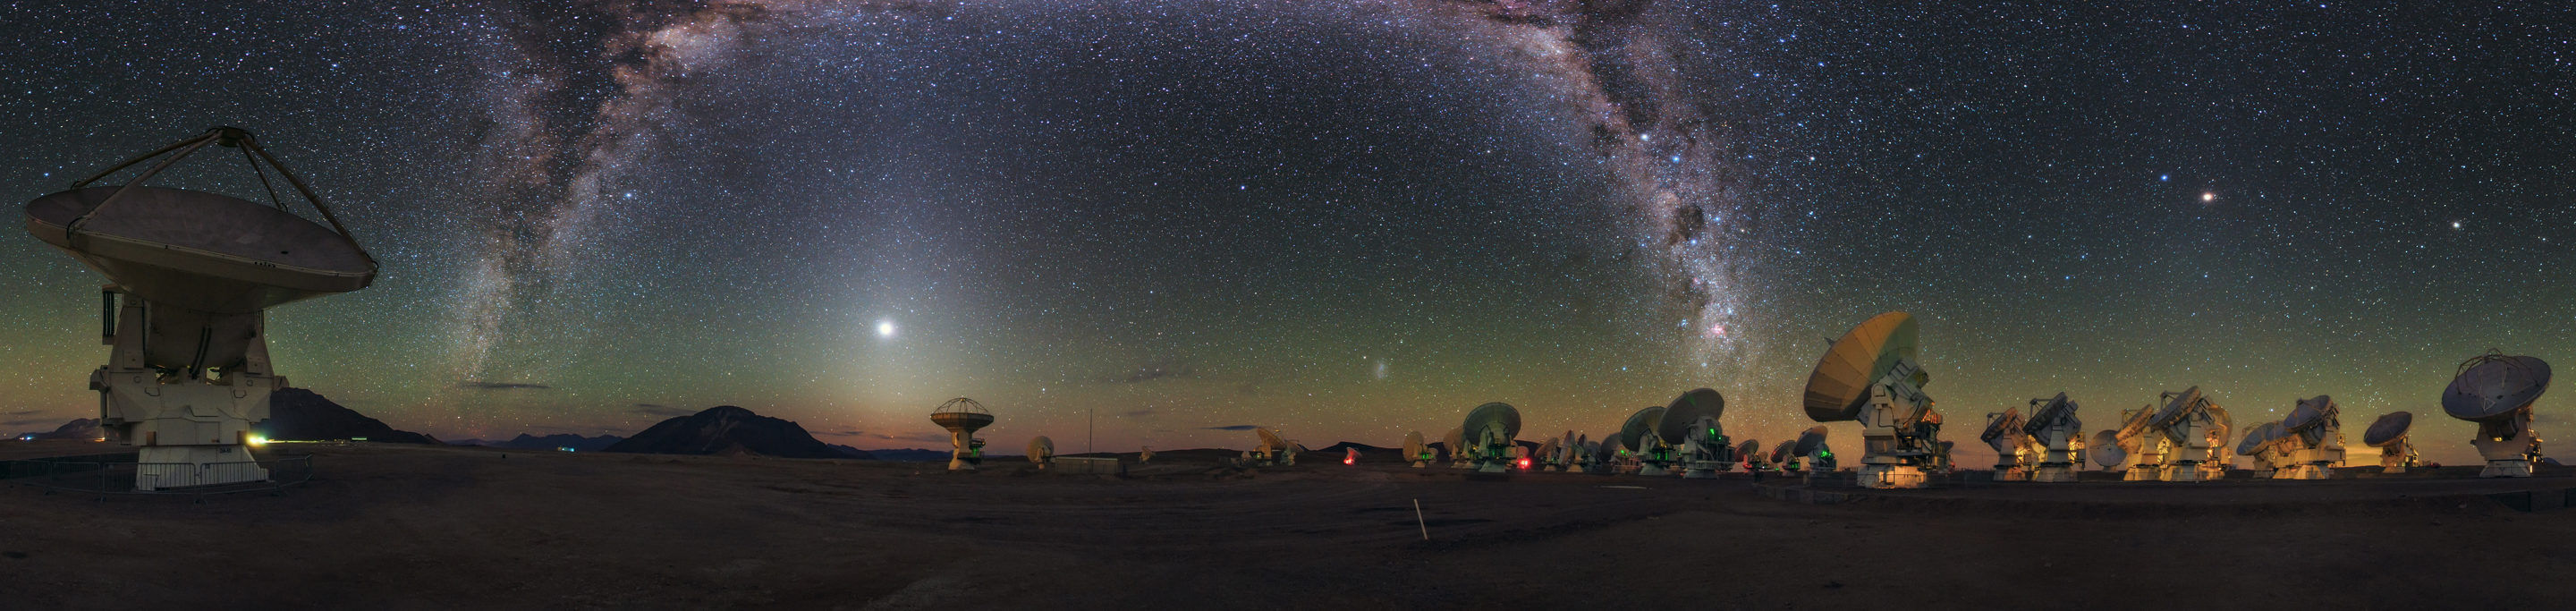 The ALMA Observatory's antennas appear to take in the sight of the Milky Way, arching like a galactic rainbow of dust and stars over the Chajnantor Plateau in the Chilean Andes